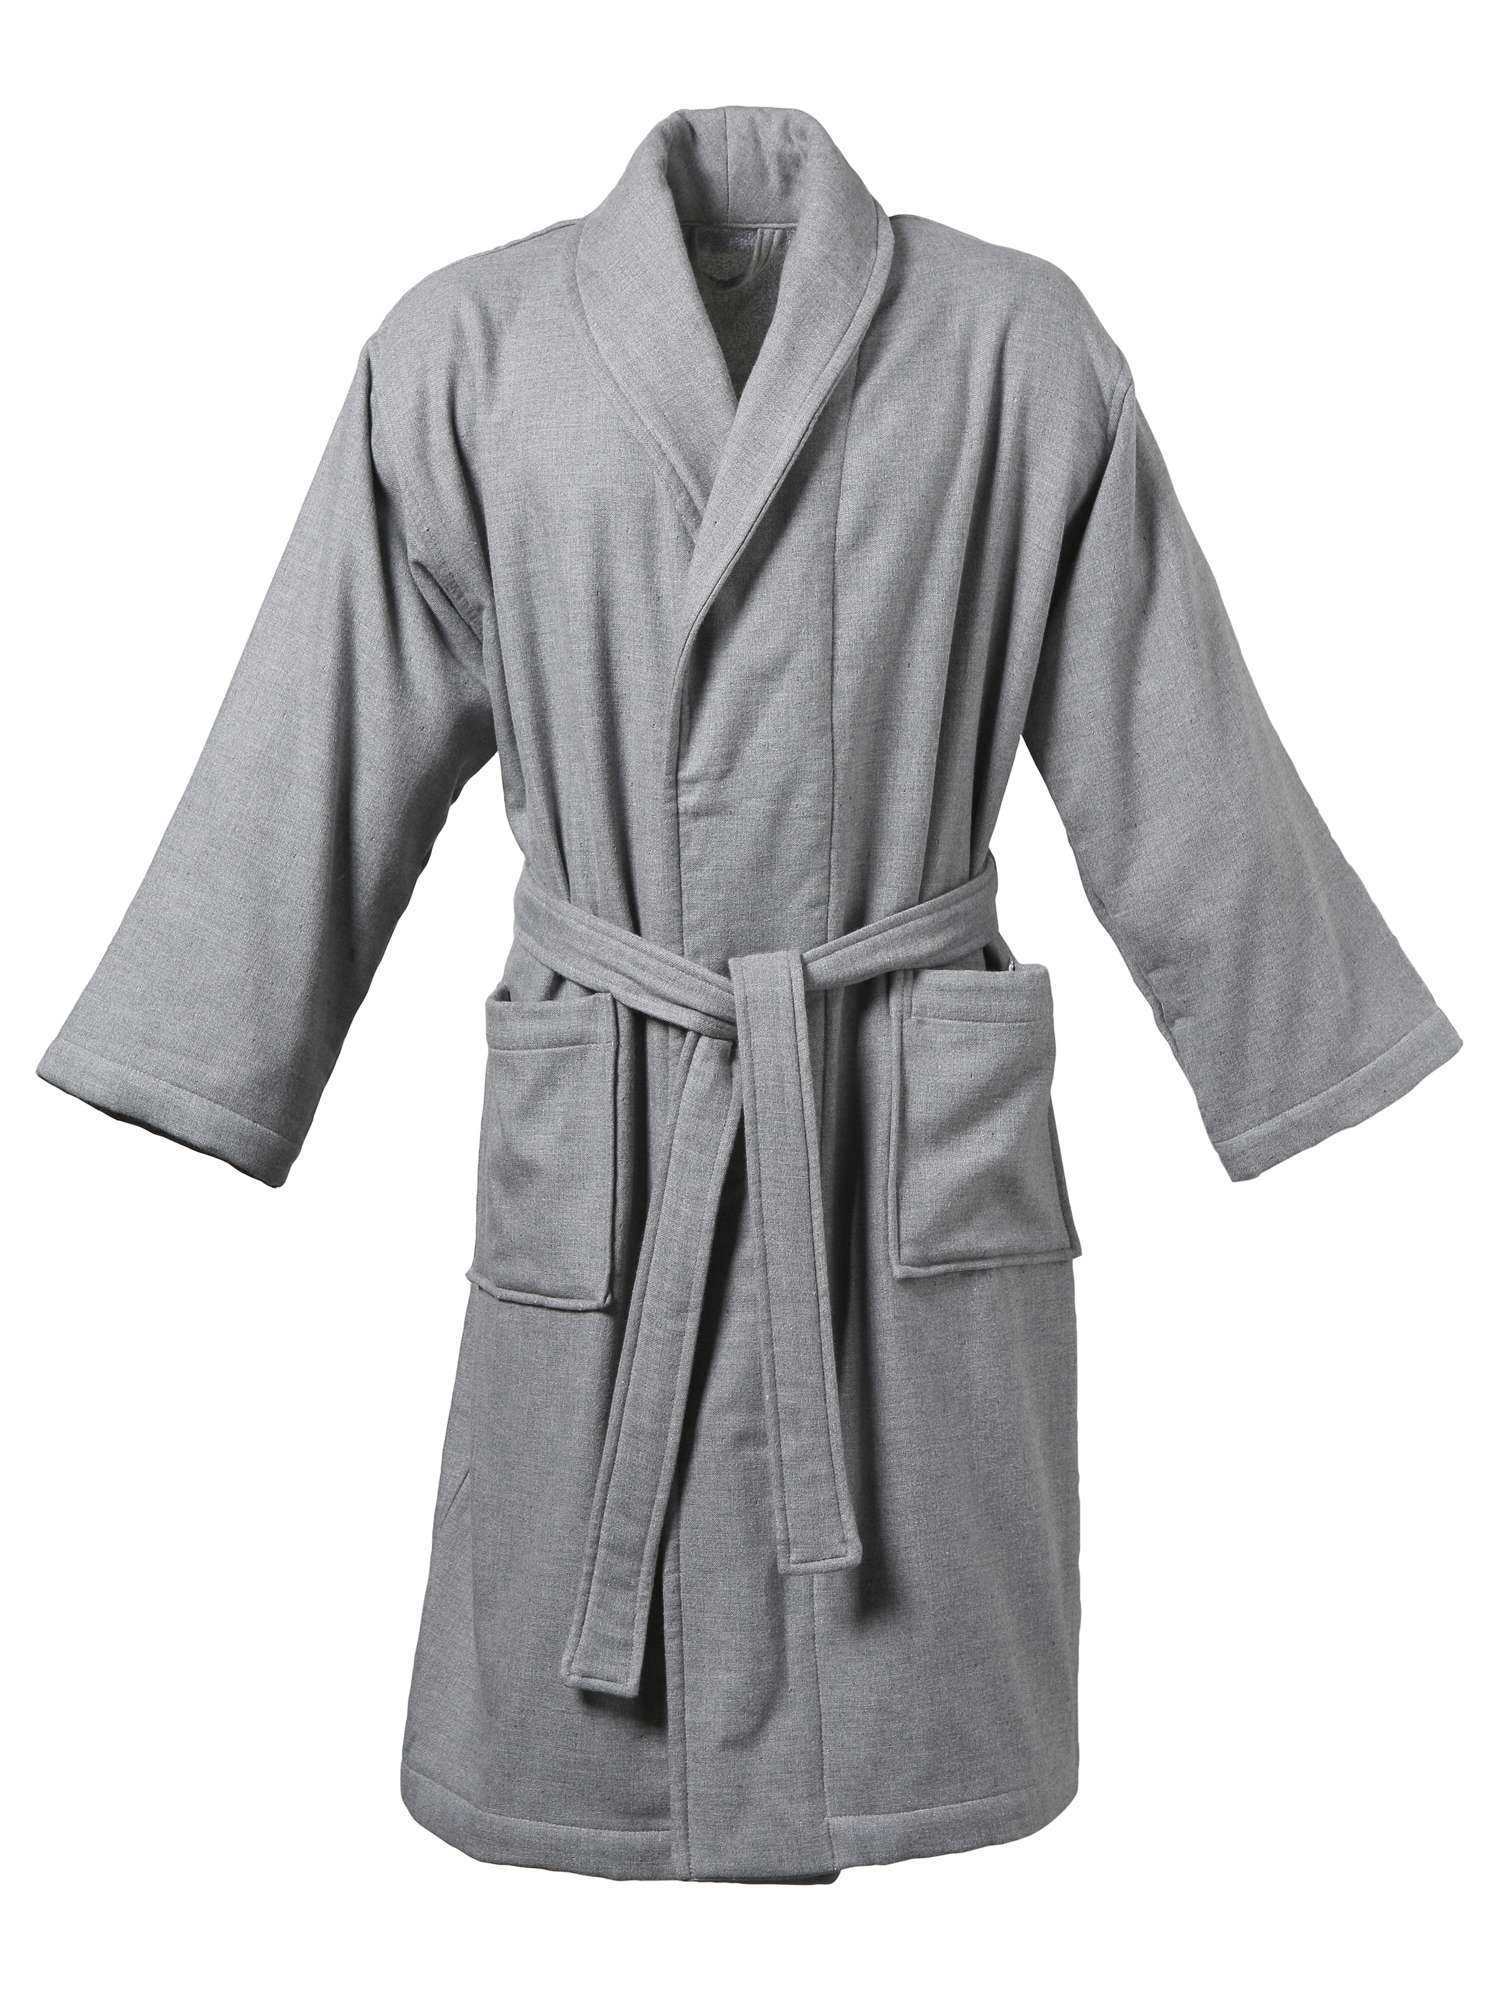 Dressing Gown | Buy Women\'s Robes - House of Fraser